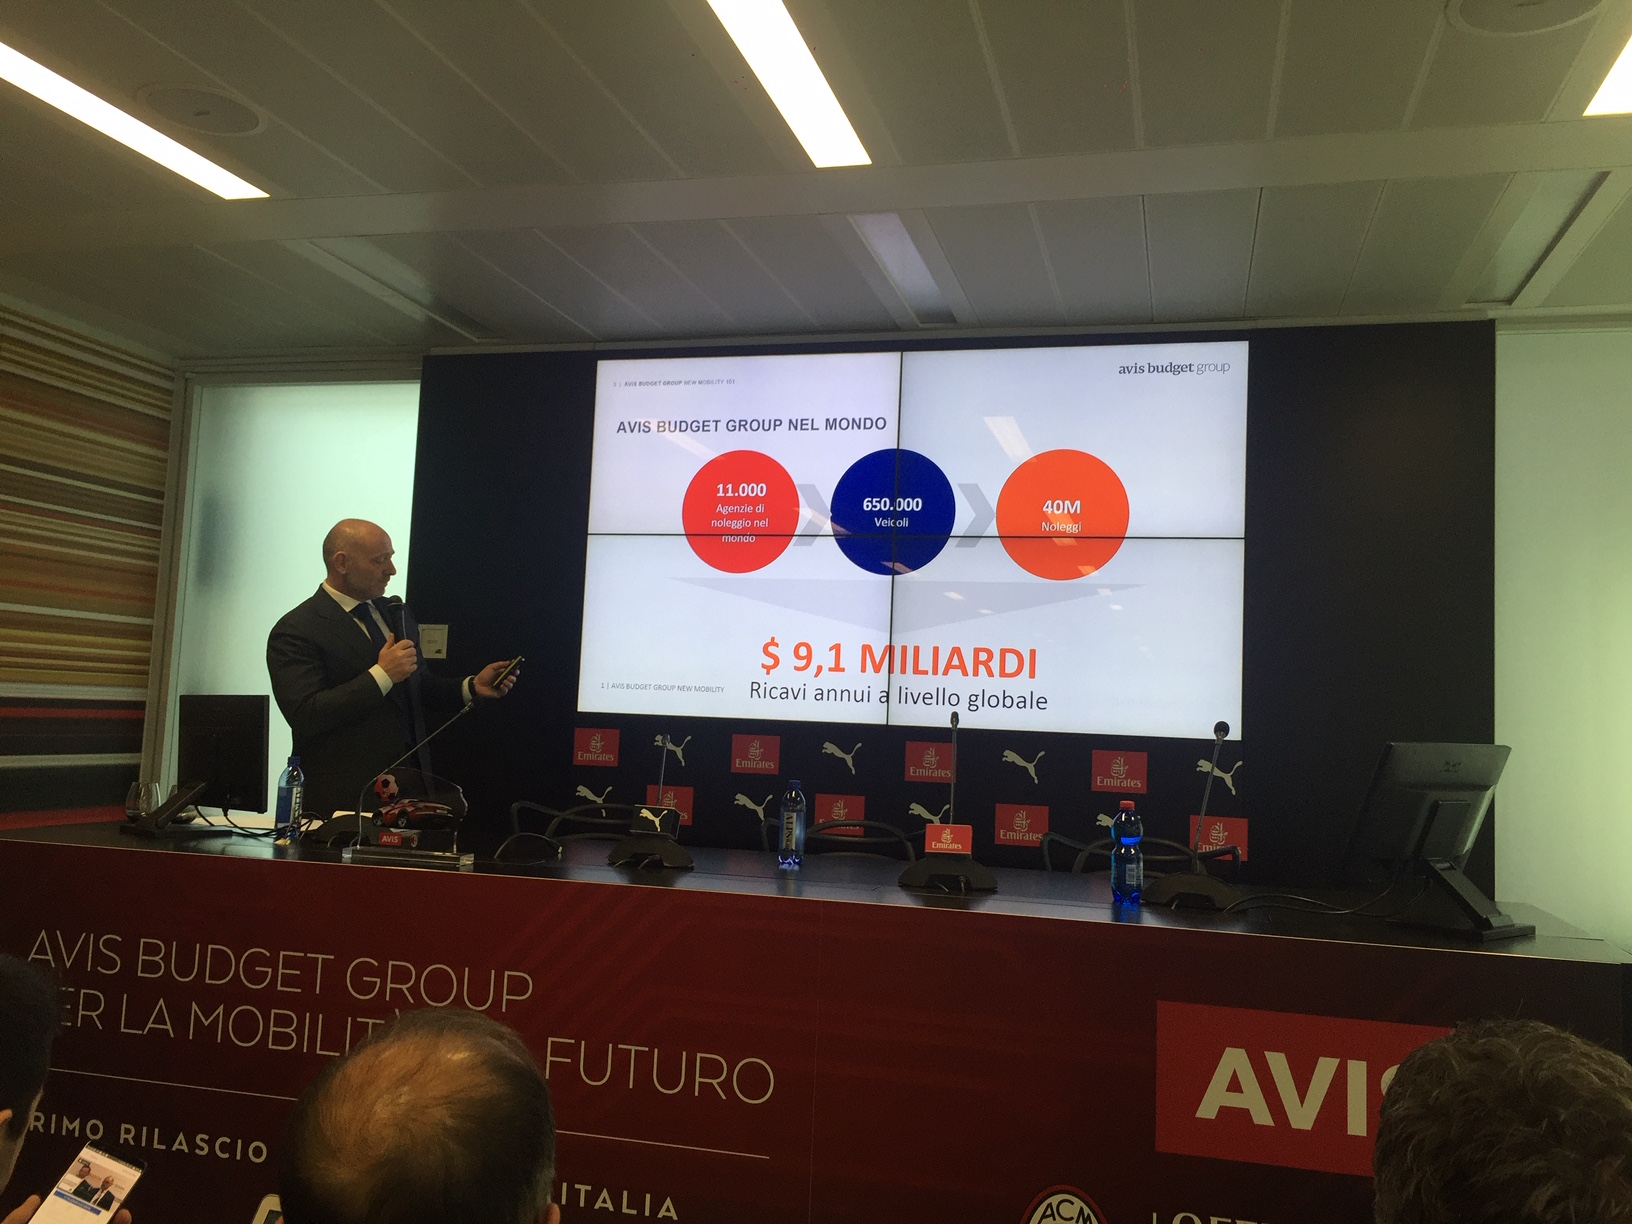 Avis Budget Group performance, world